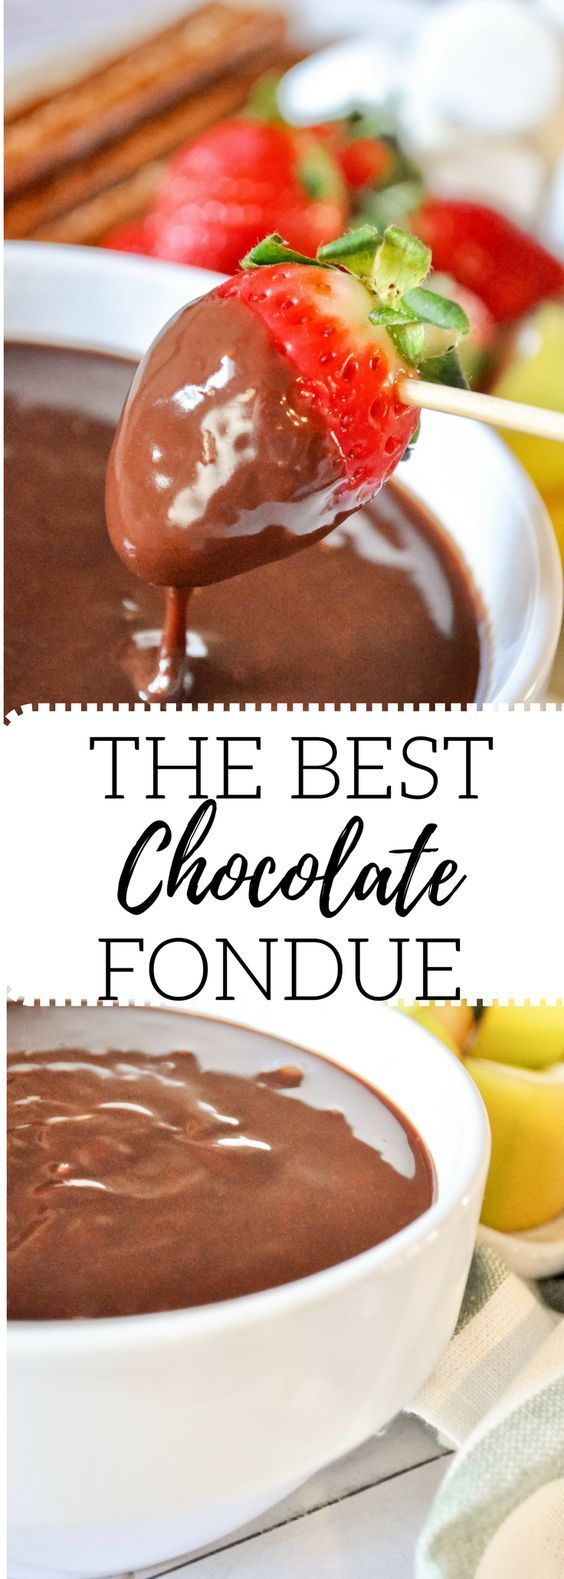 The BEST Chocolate Fondue with Ghirardelli Chocolate #fonduerecipes